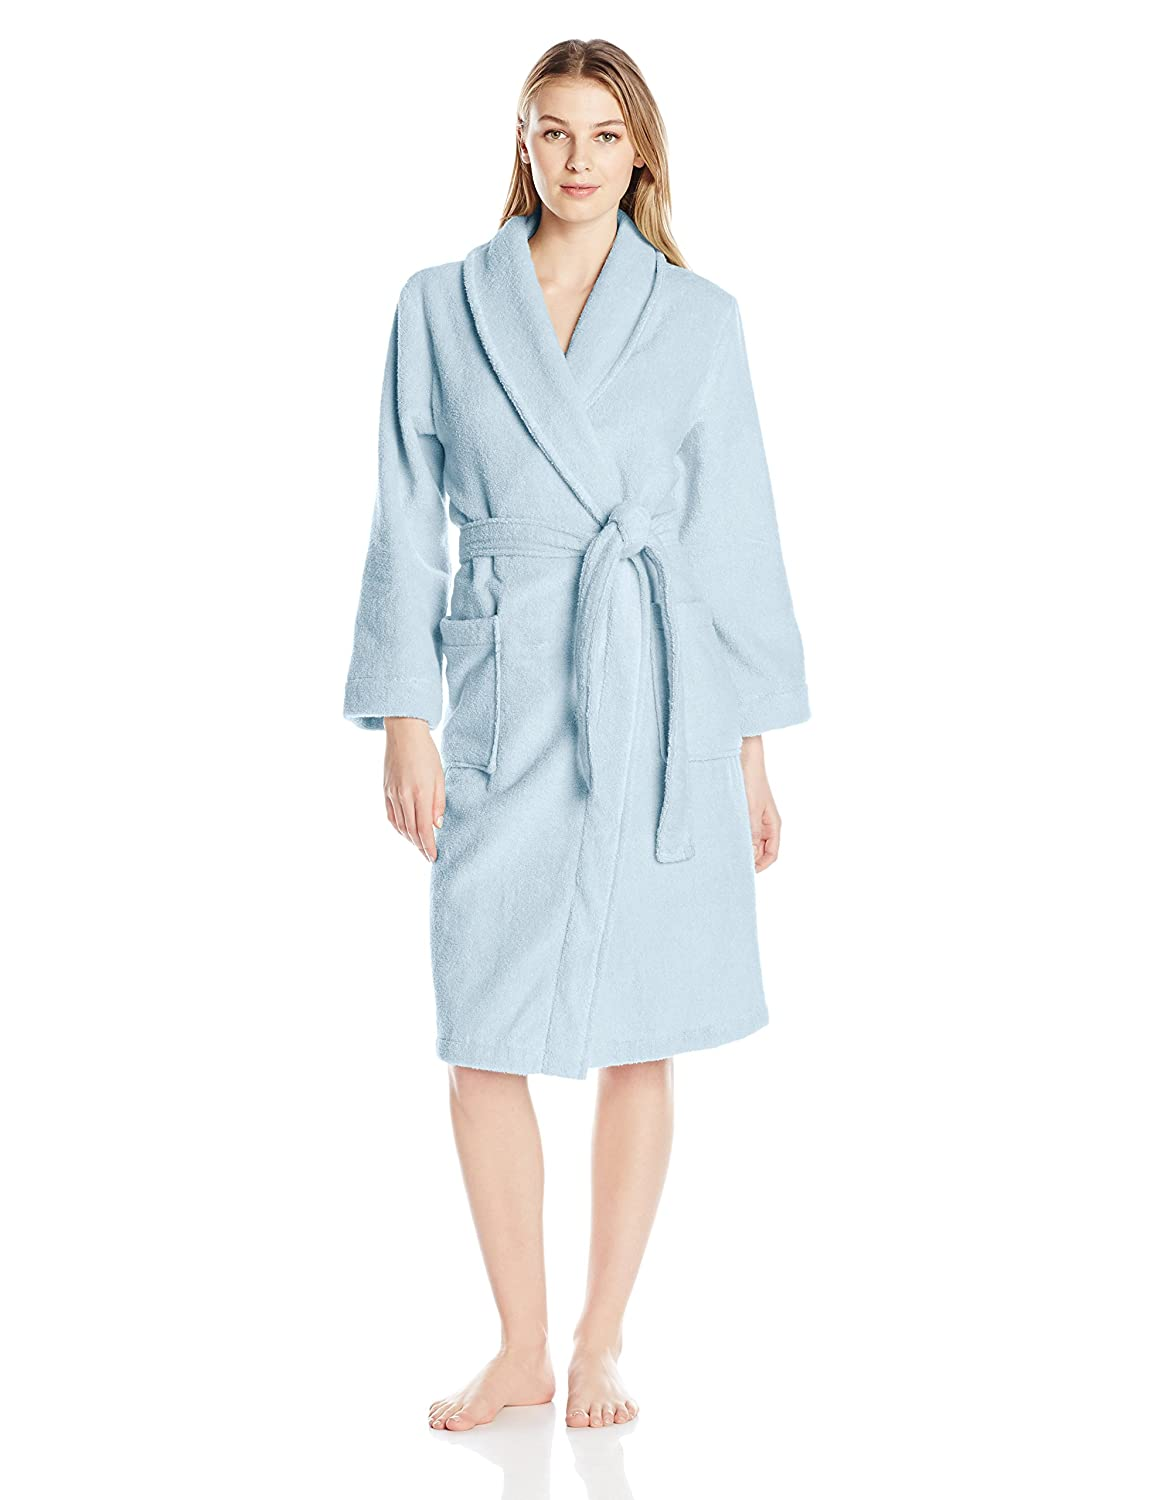 iRelax Women's 42 Turkish Terry Shawl Collar Robe iRelax Womens Sleepwear 9451005